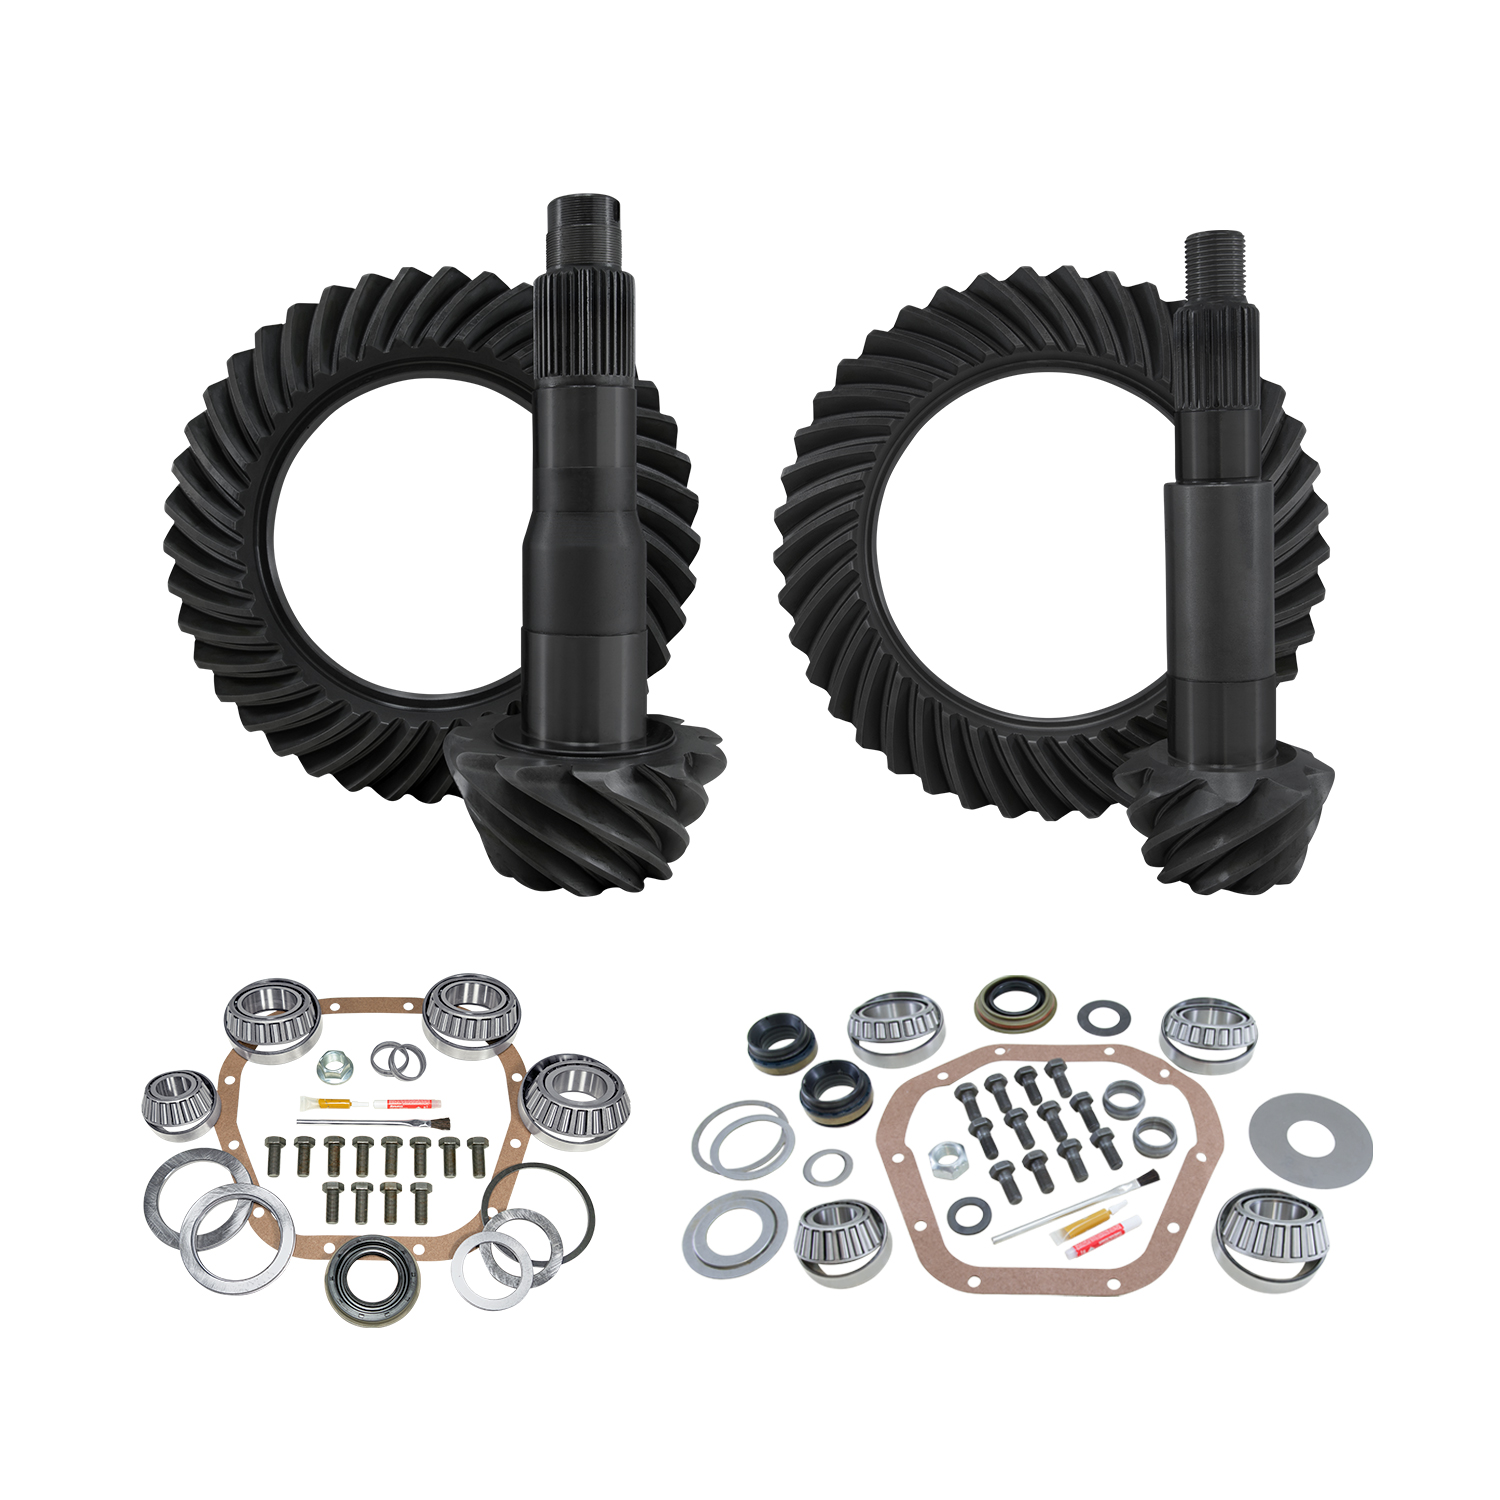 YGK142 - Yukon Complete Rev Gear and Kit Pakage for F250 and F350 Dana 60 Reverse, with 4:88 Gear Ratio